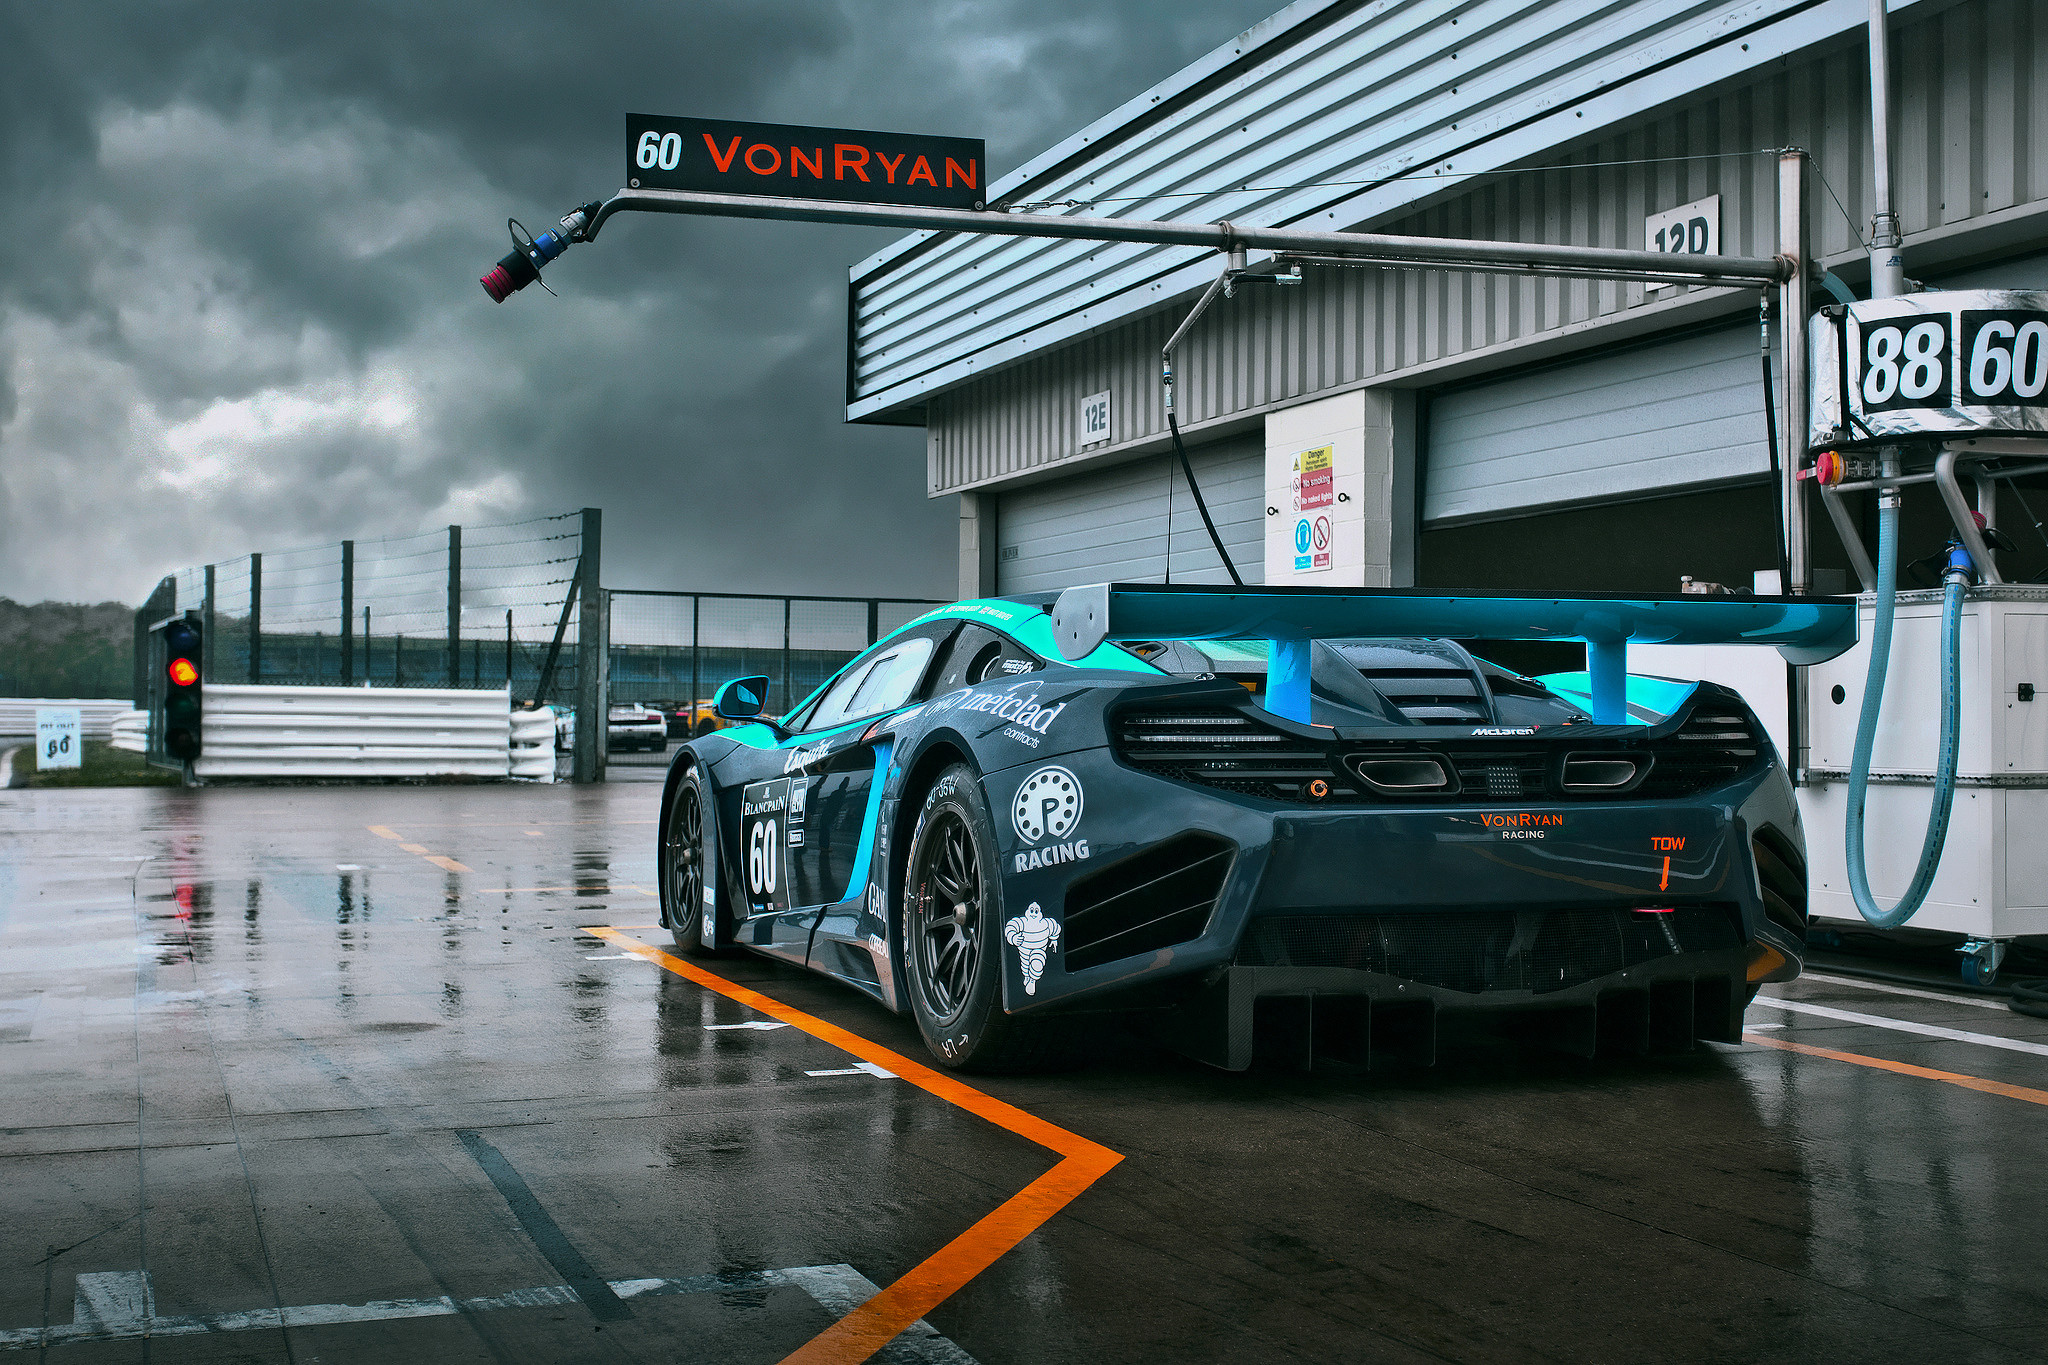 Res: 2048x1365, HD Wallpaper   Background Image ID:262041.  Vehicles Race Car